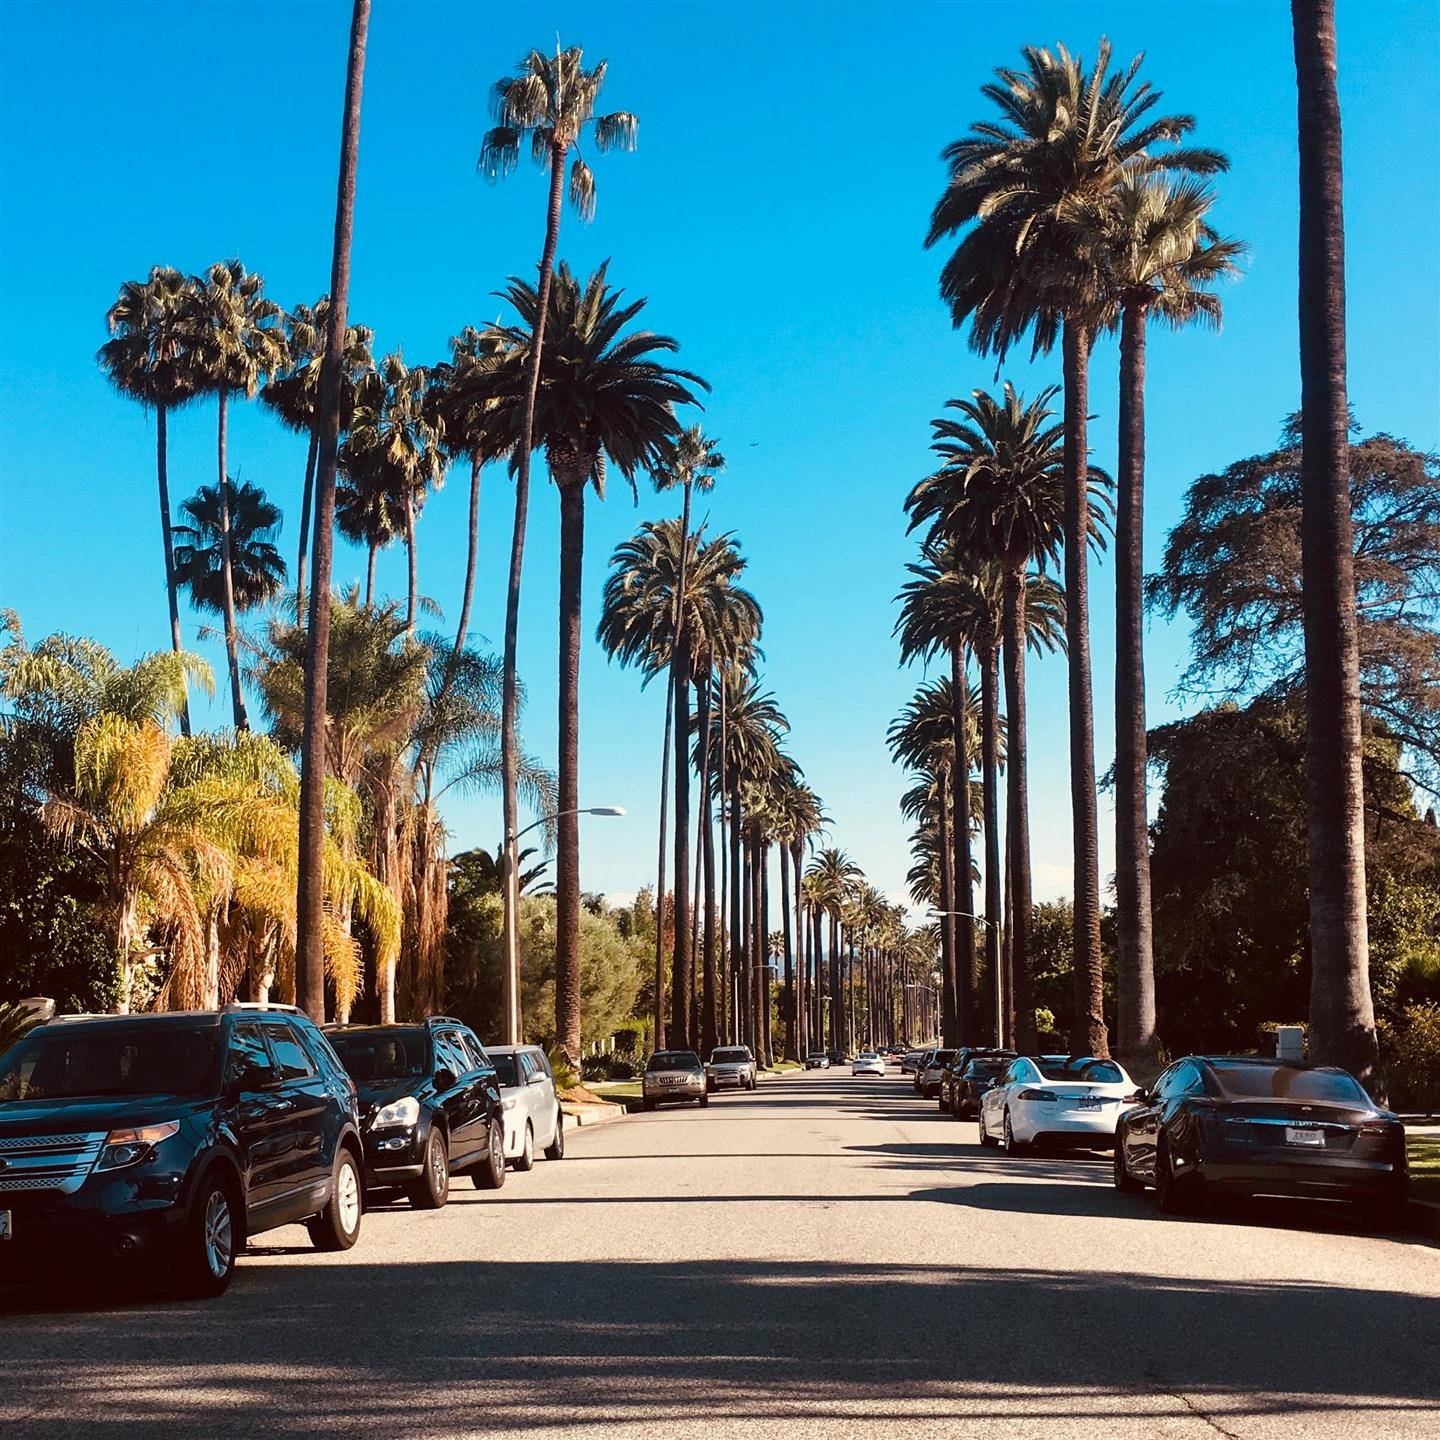 California street with palm trees lining the road